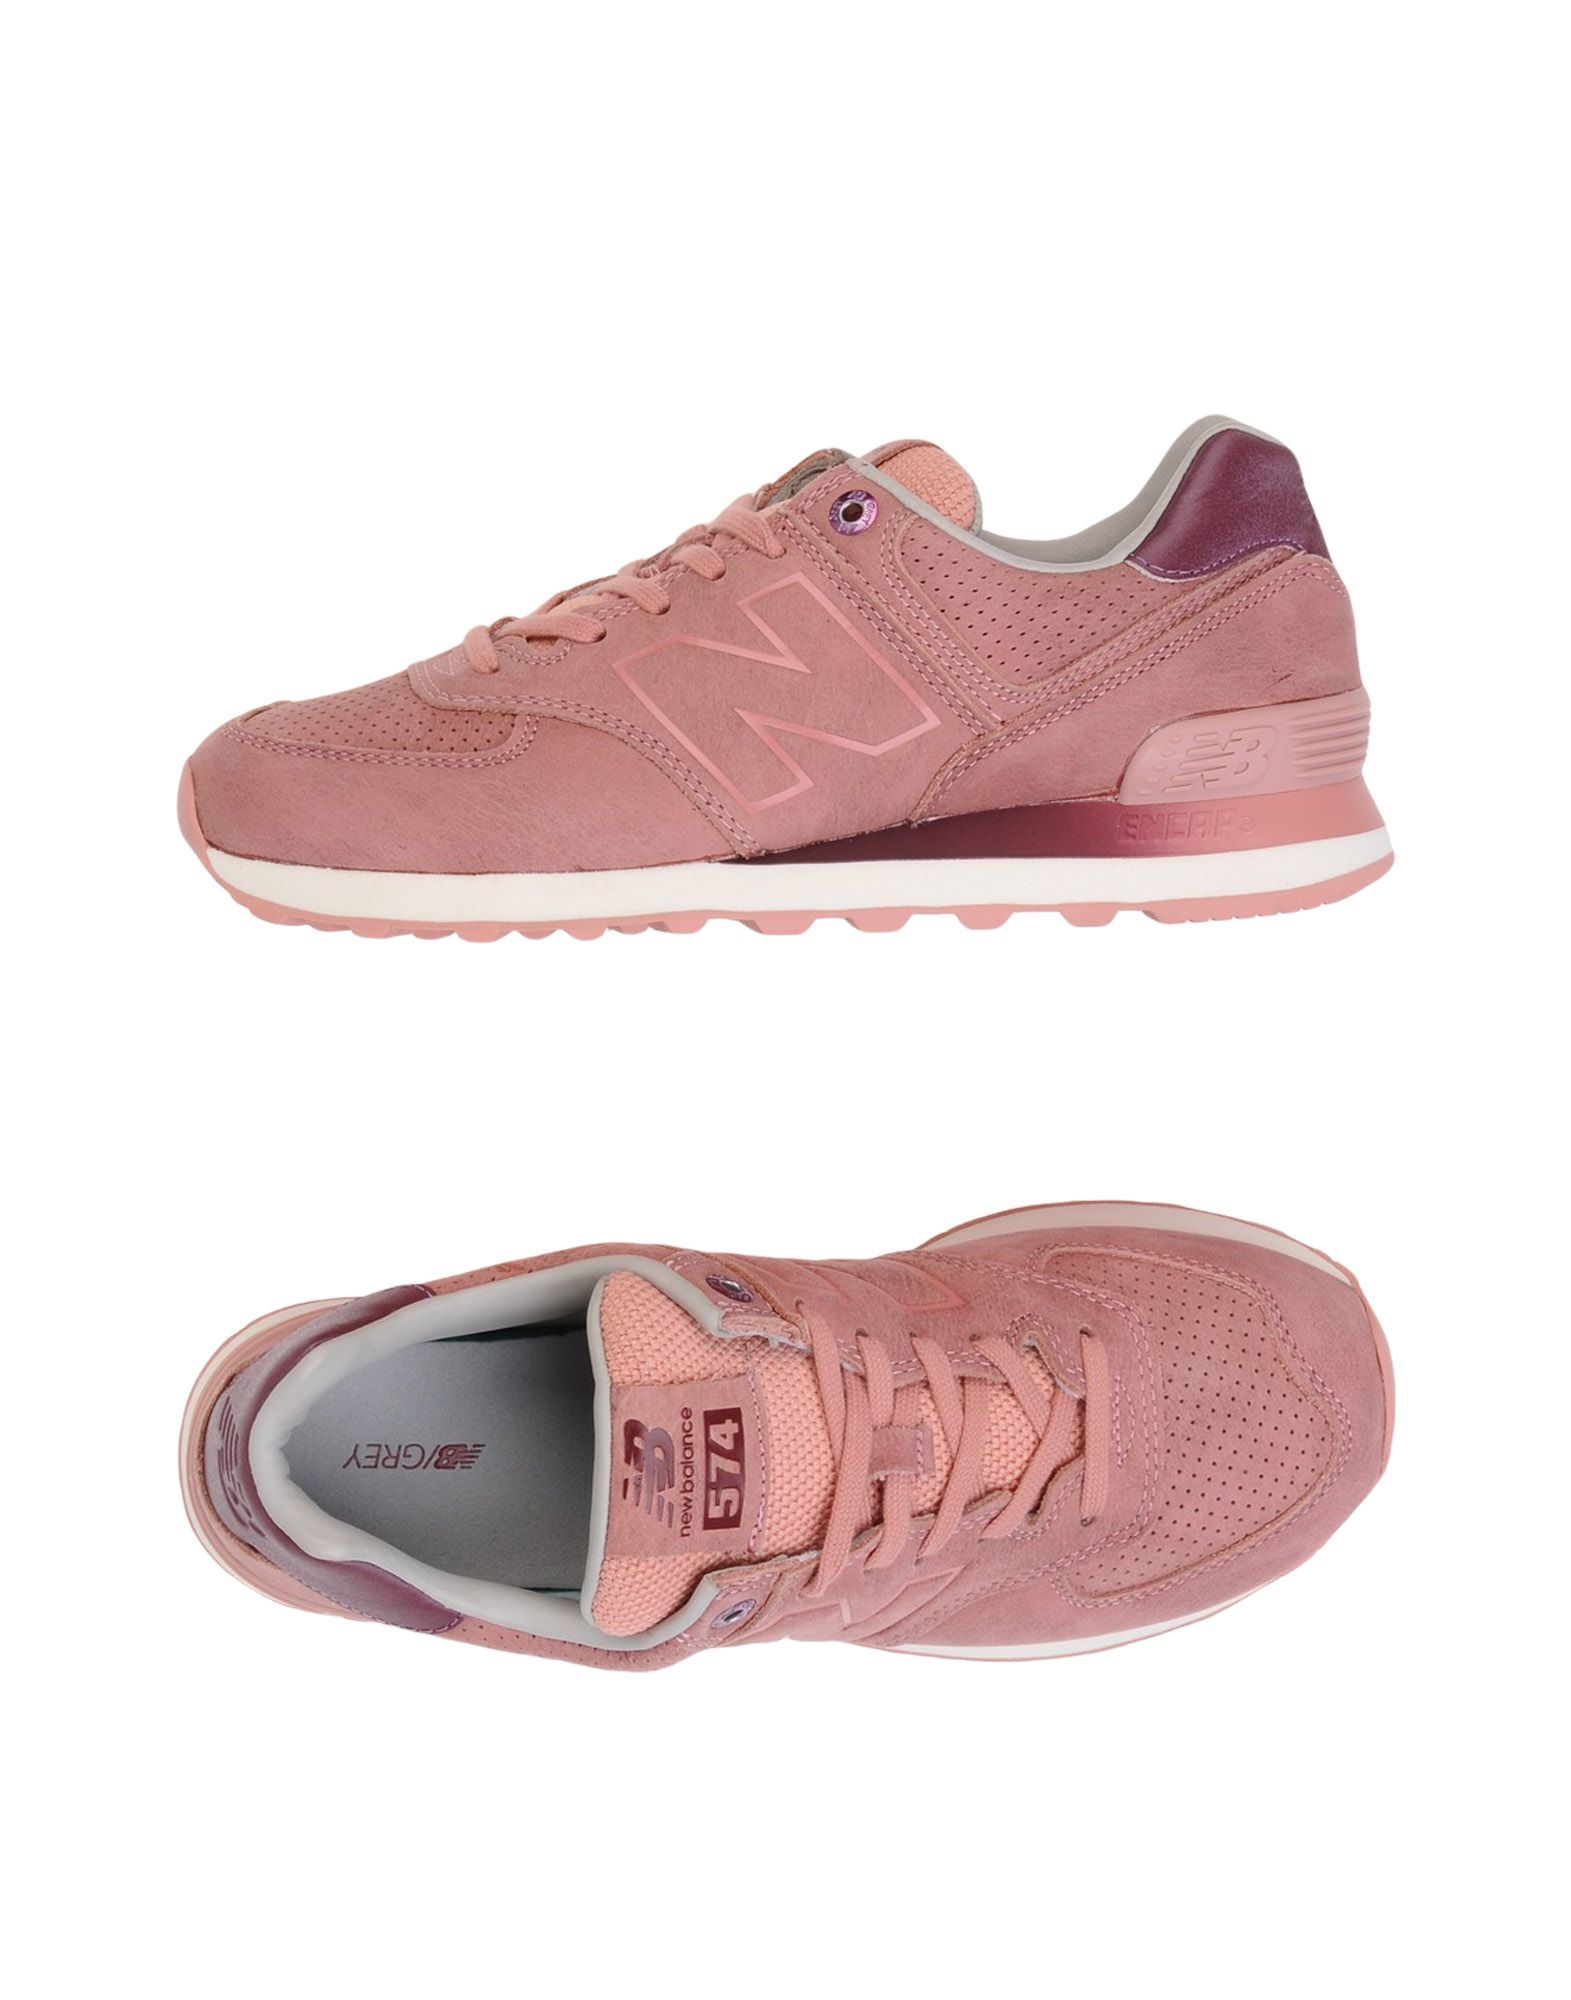 Sneakers New Balance 574 Grey Pack - Femme - Sneakers New Balance sur